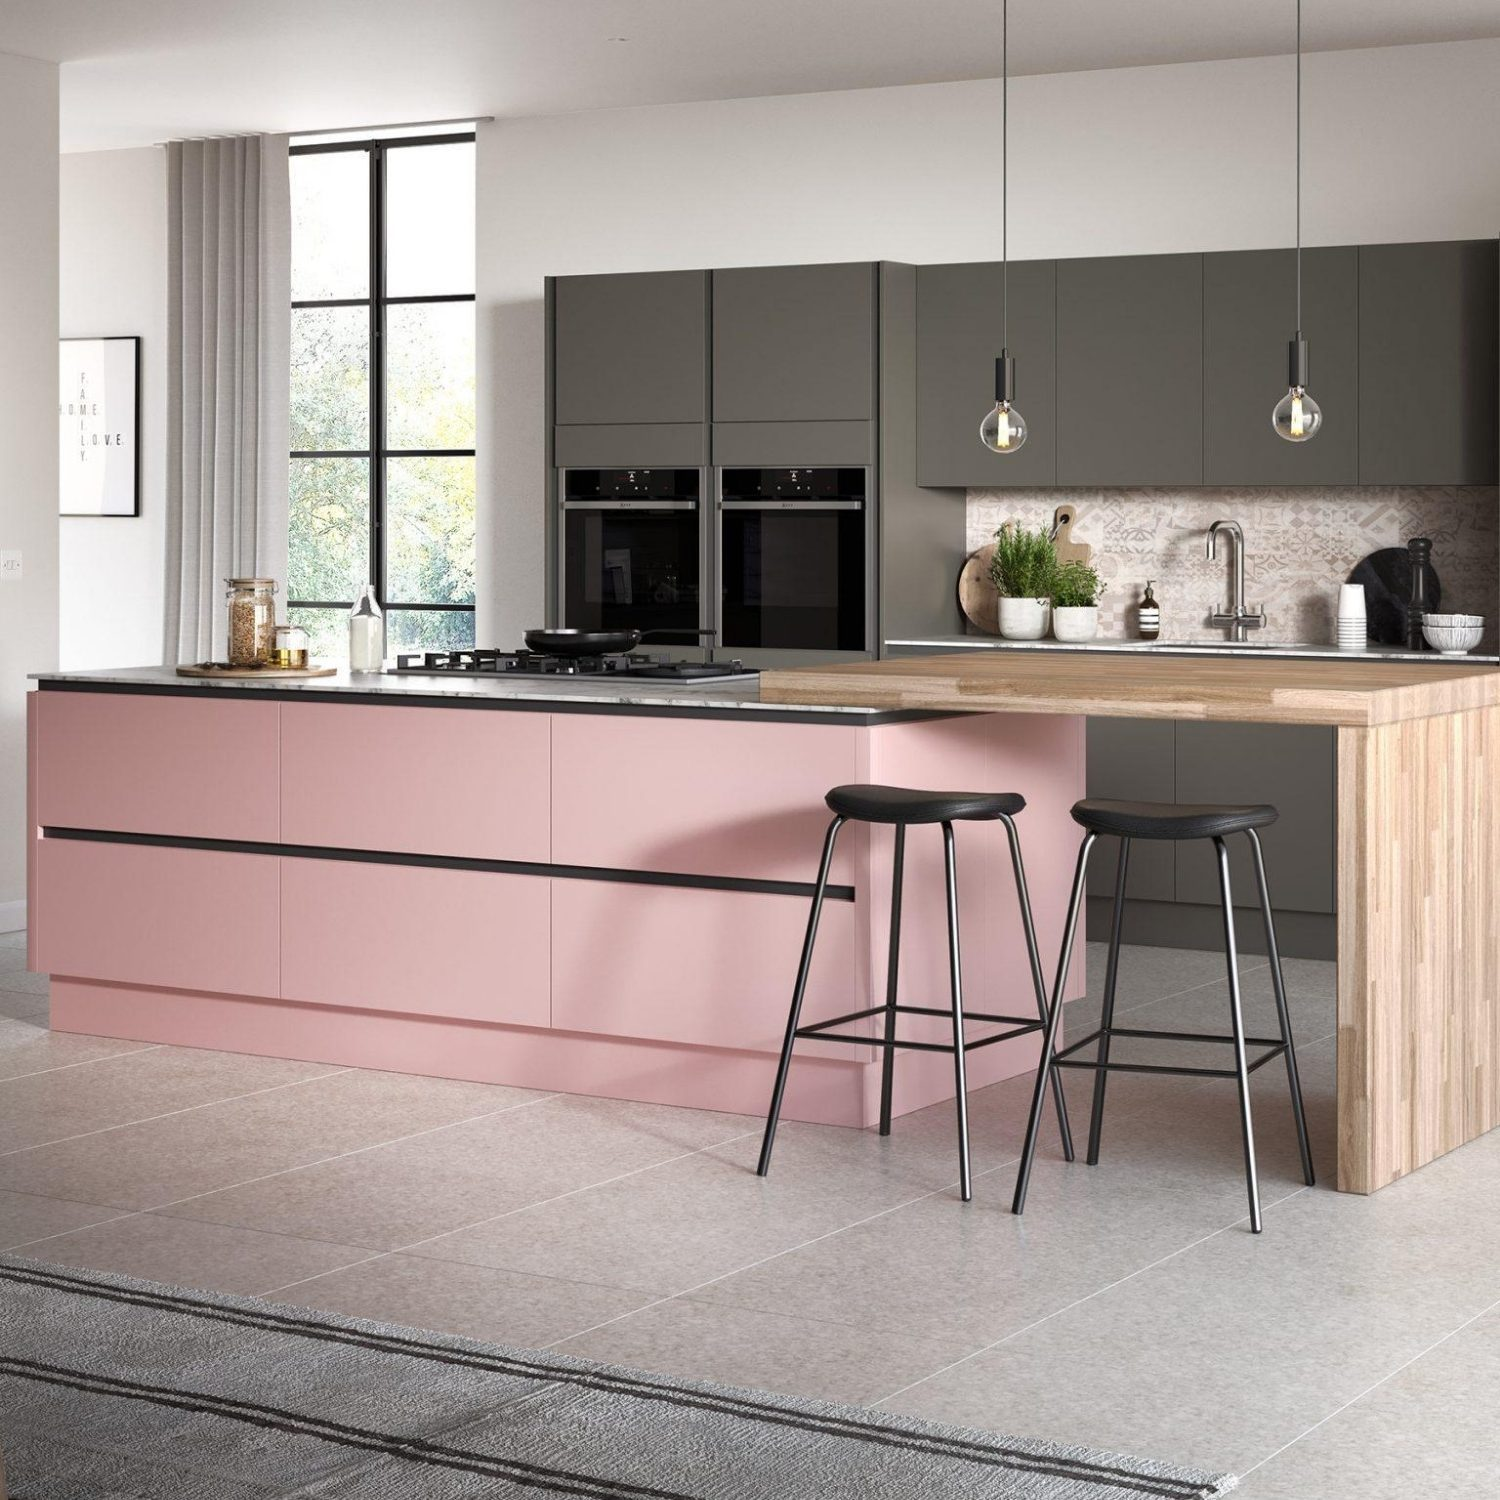 pink kitchen in surrey